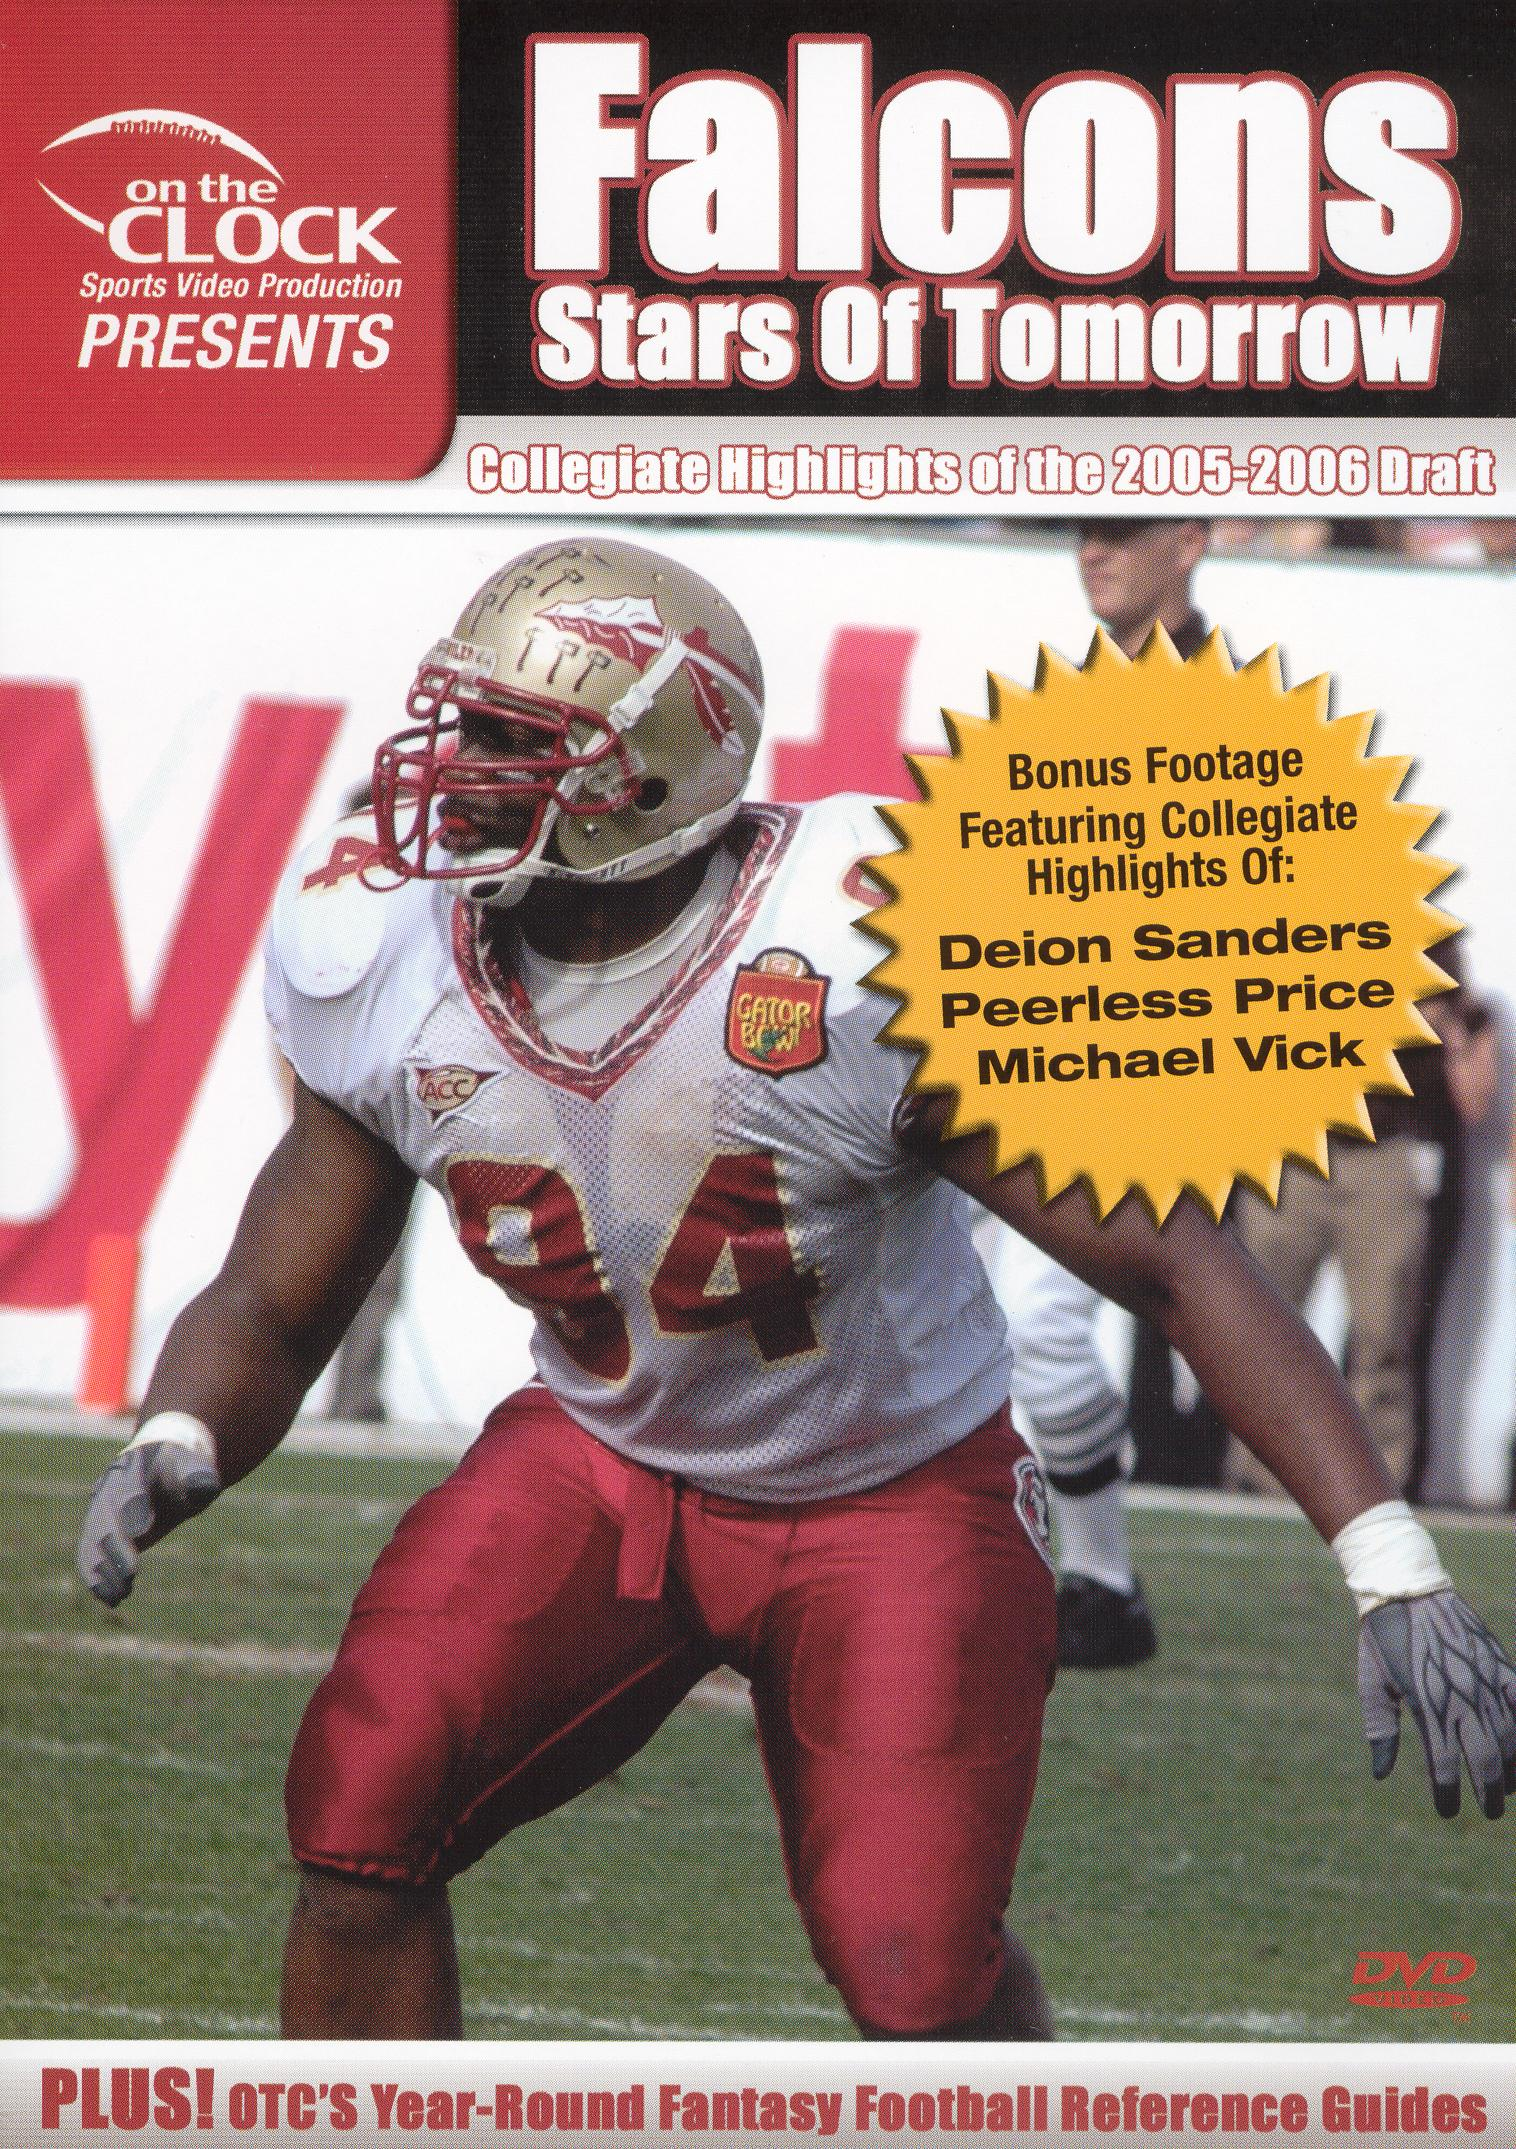 On the Clock Presents: Falcons - 2005 Draft Picks Collegiate Highlights